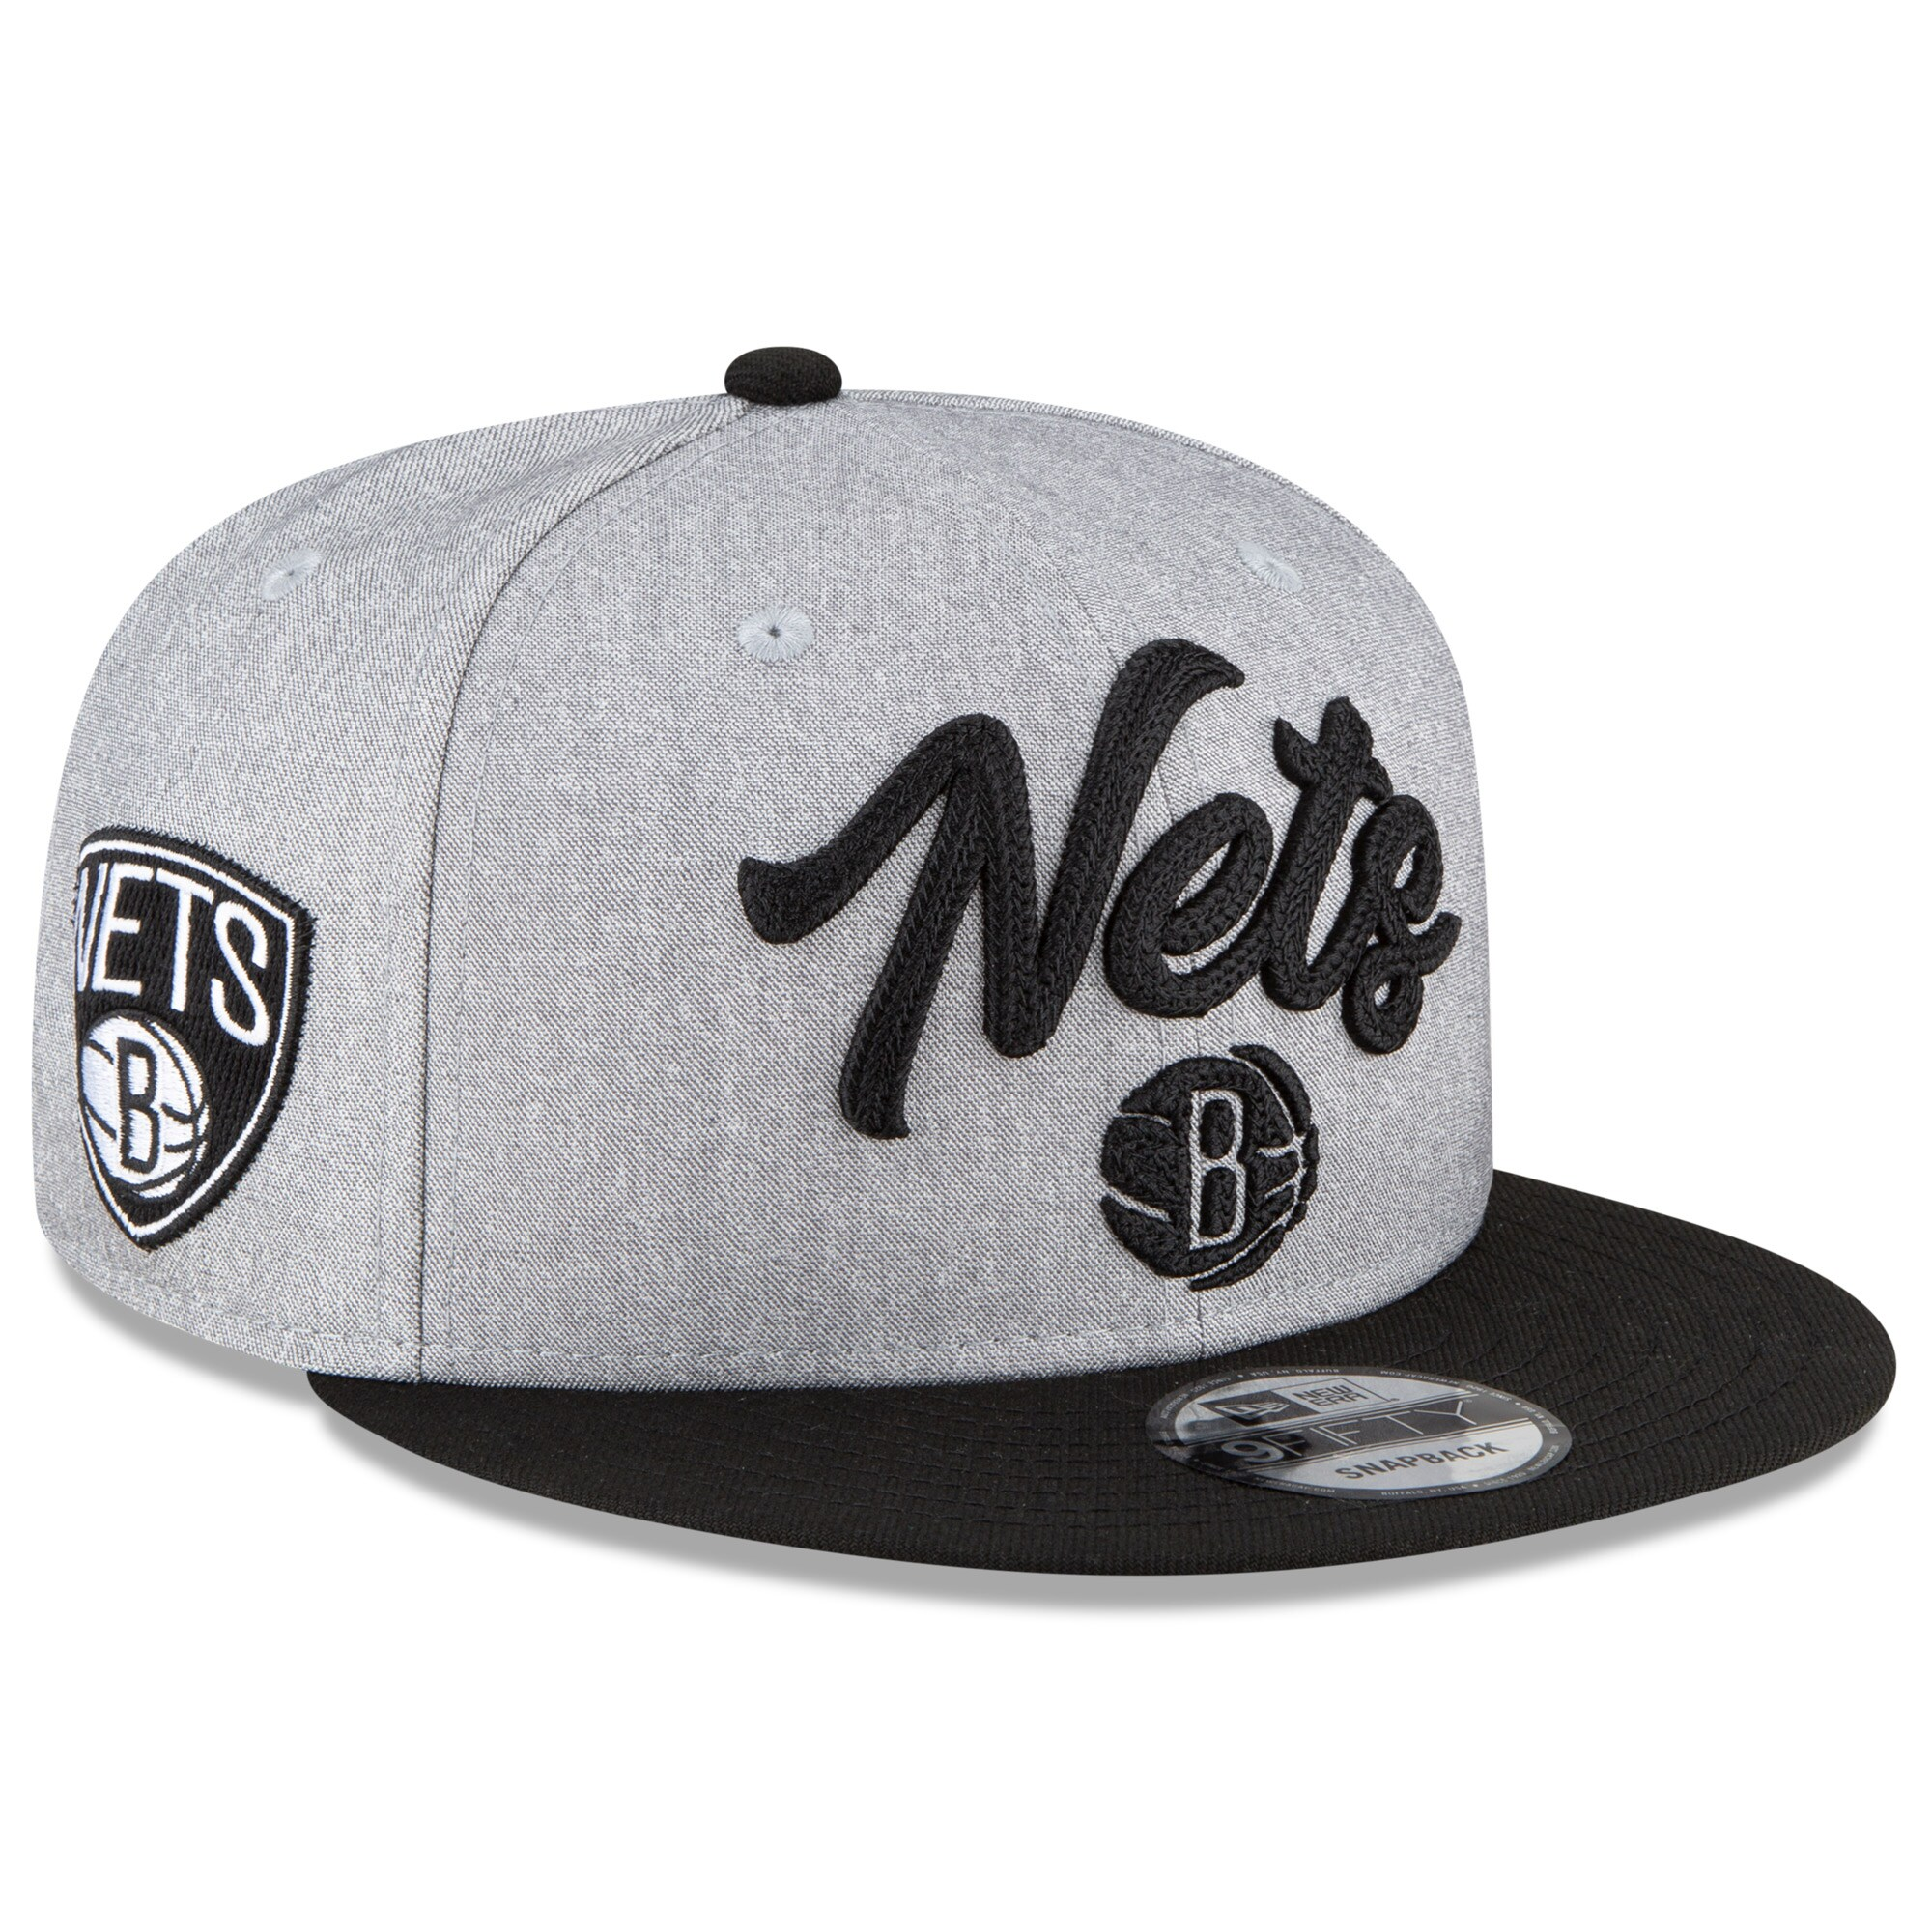 Brooklyn Nets New Era 2020 NBA Draft Official On-Stage 9FIFTY Snapback Adjustable Hat - Heather Gray/Black